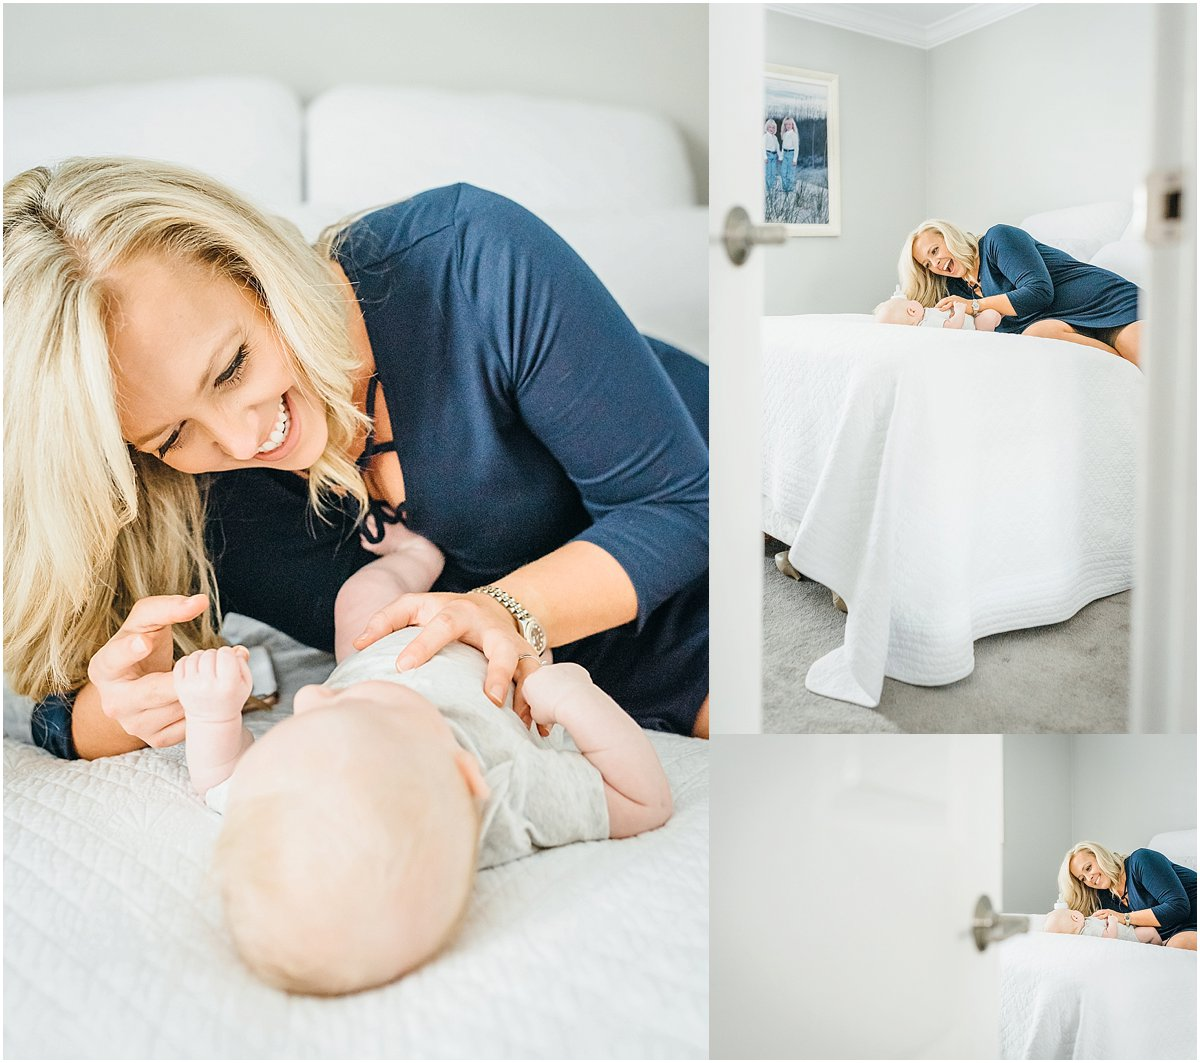 Ashley_Rogers_Photography_Orlando_Non-Posed_Newborn_Family_Lifestyle_Photographer_0867.jpg